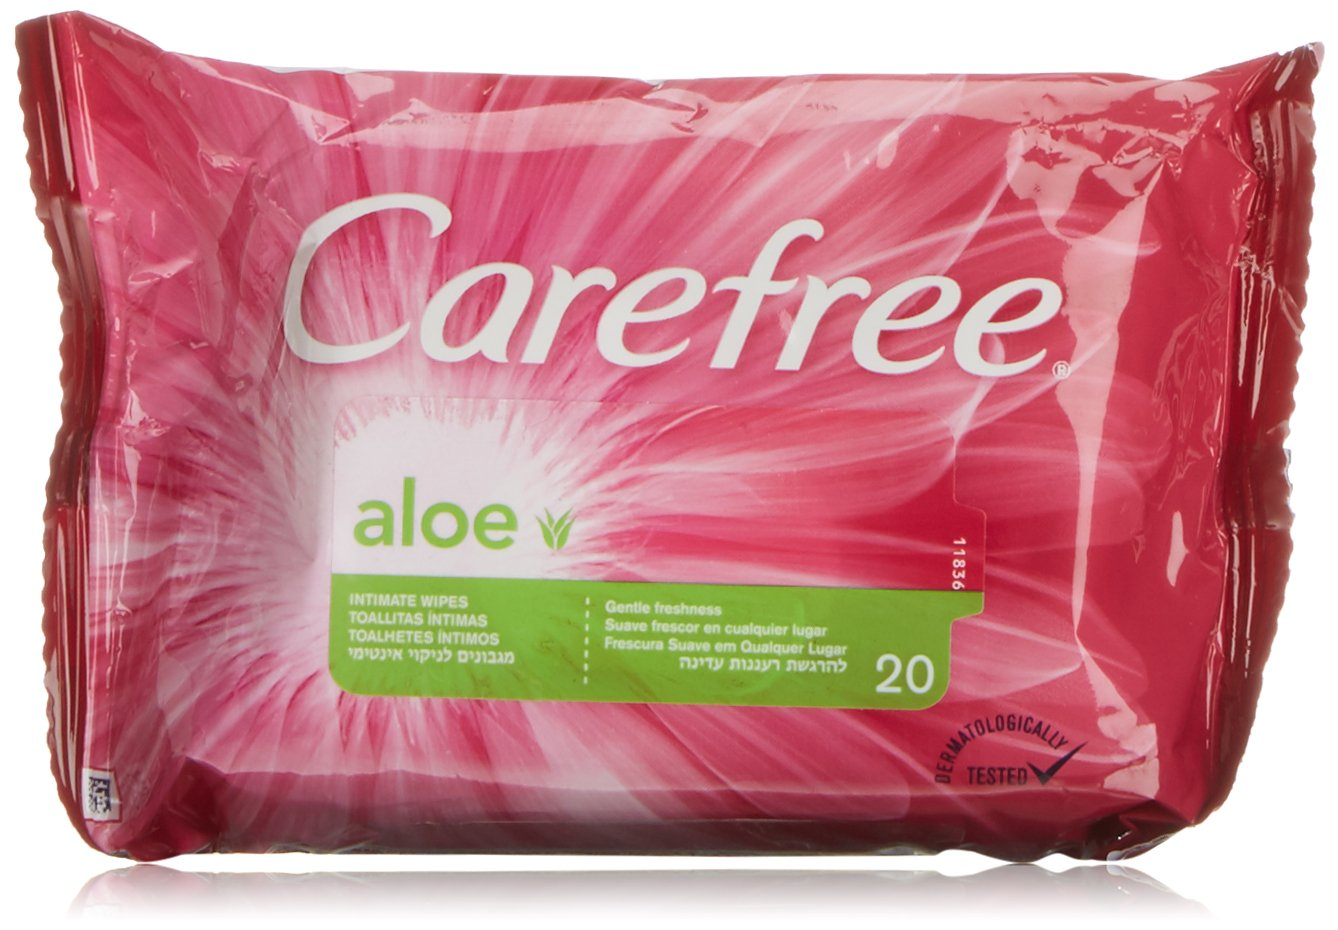 Amazon.com : CAREFREE 2 x 20 UDS Aloe Intimates Wipes by Carefree : Beauty